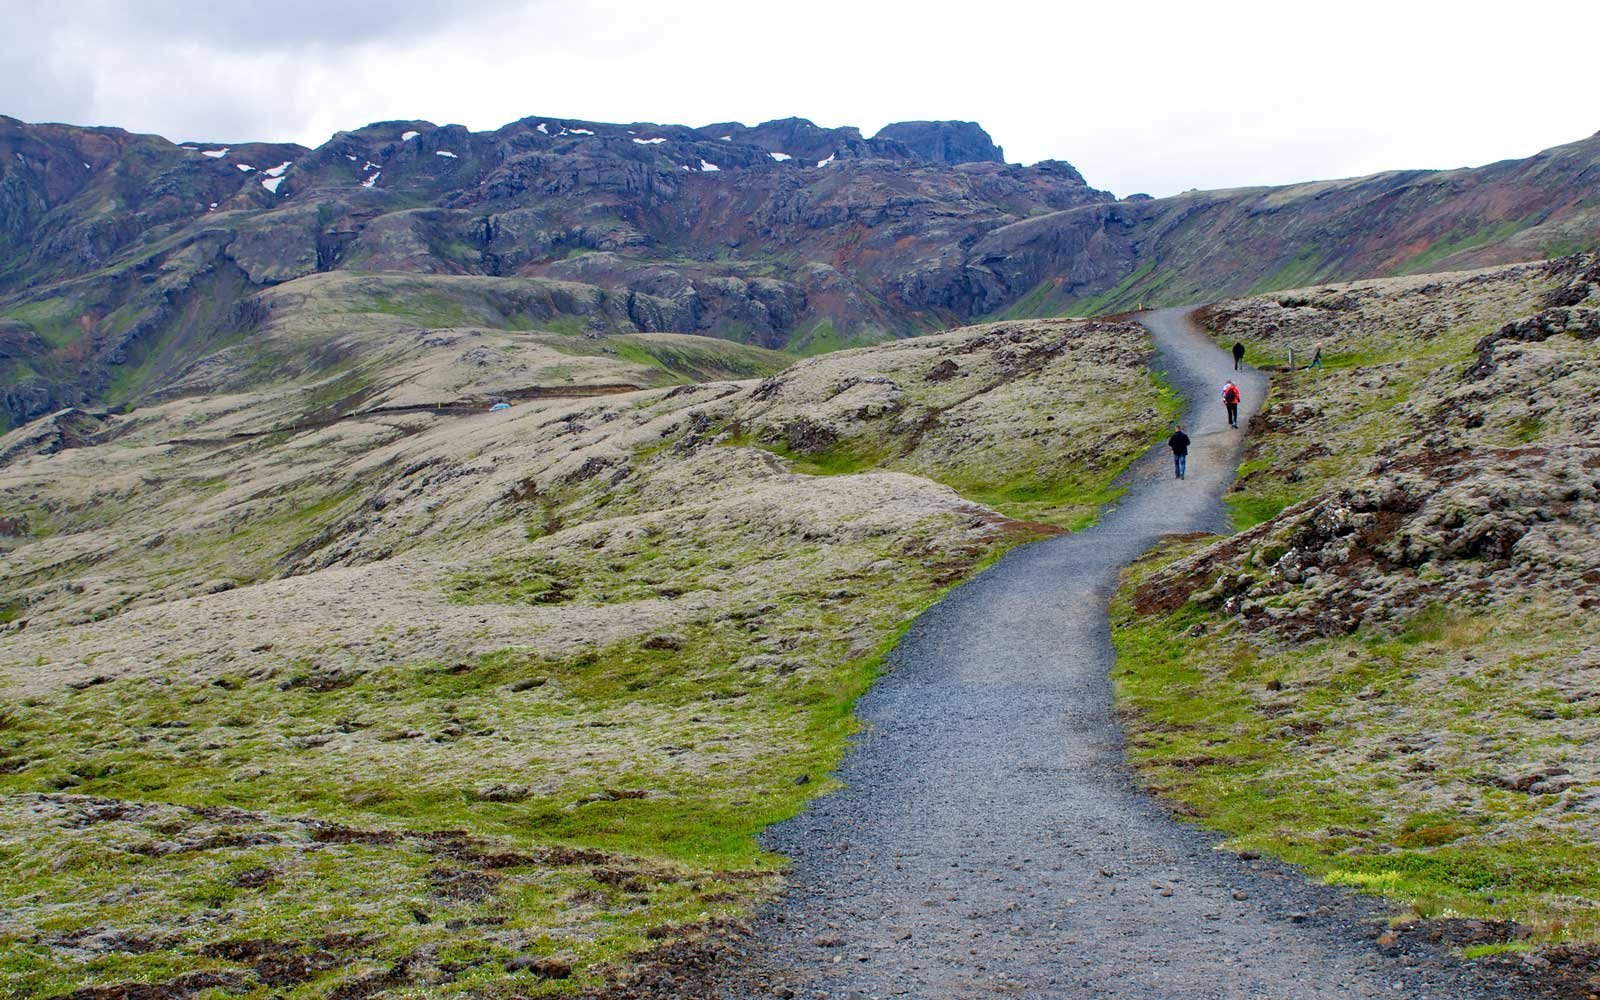 A path of trekking in the moss covered volcanic hills near  Nesjavellir geothermal power plant in Iceland.